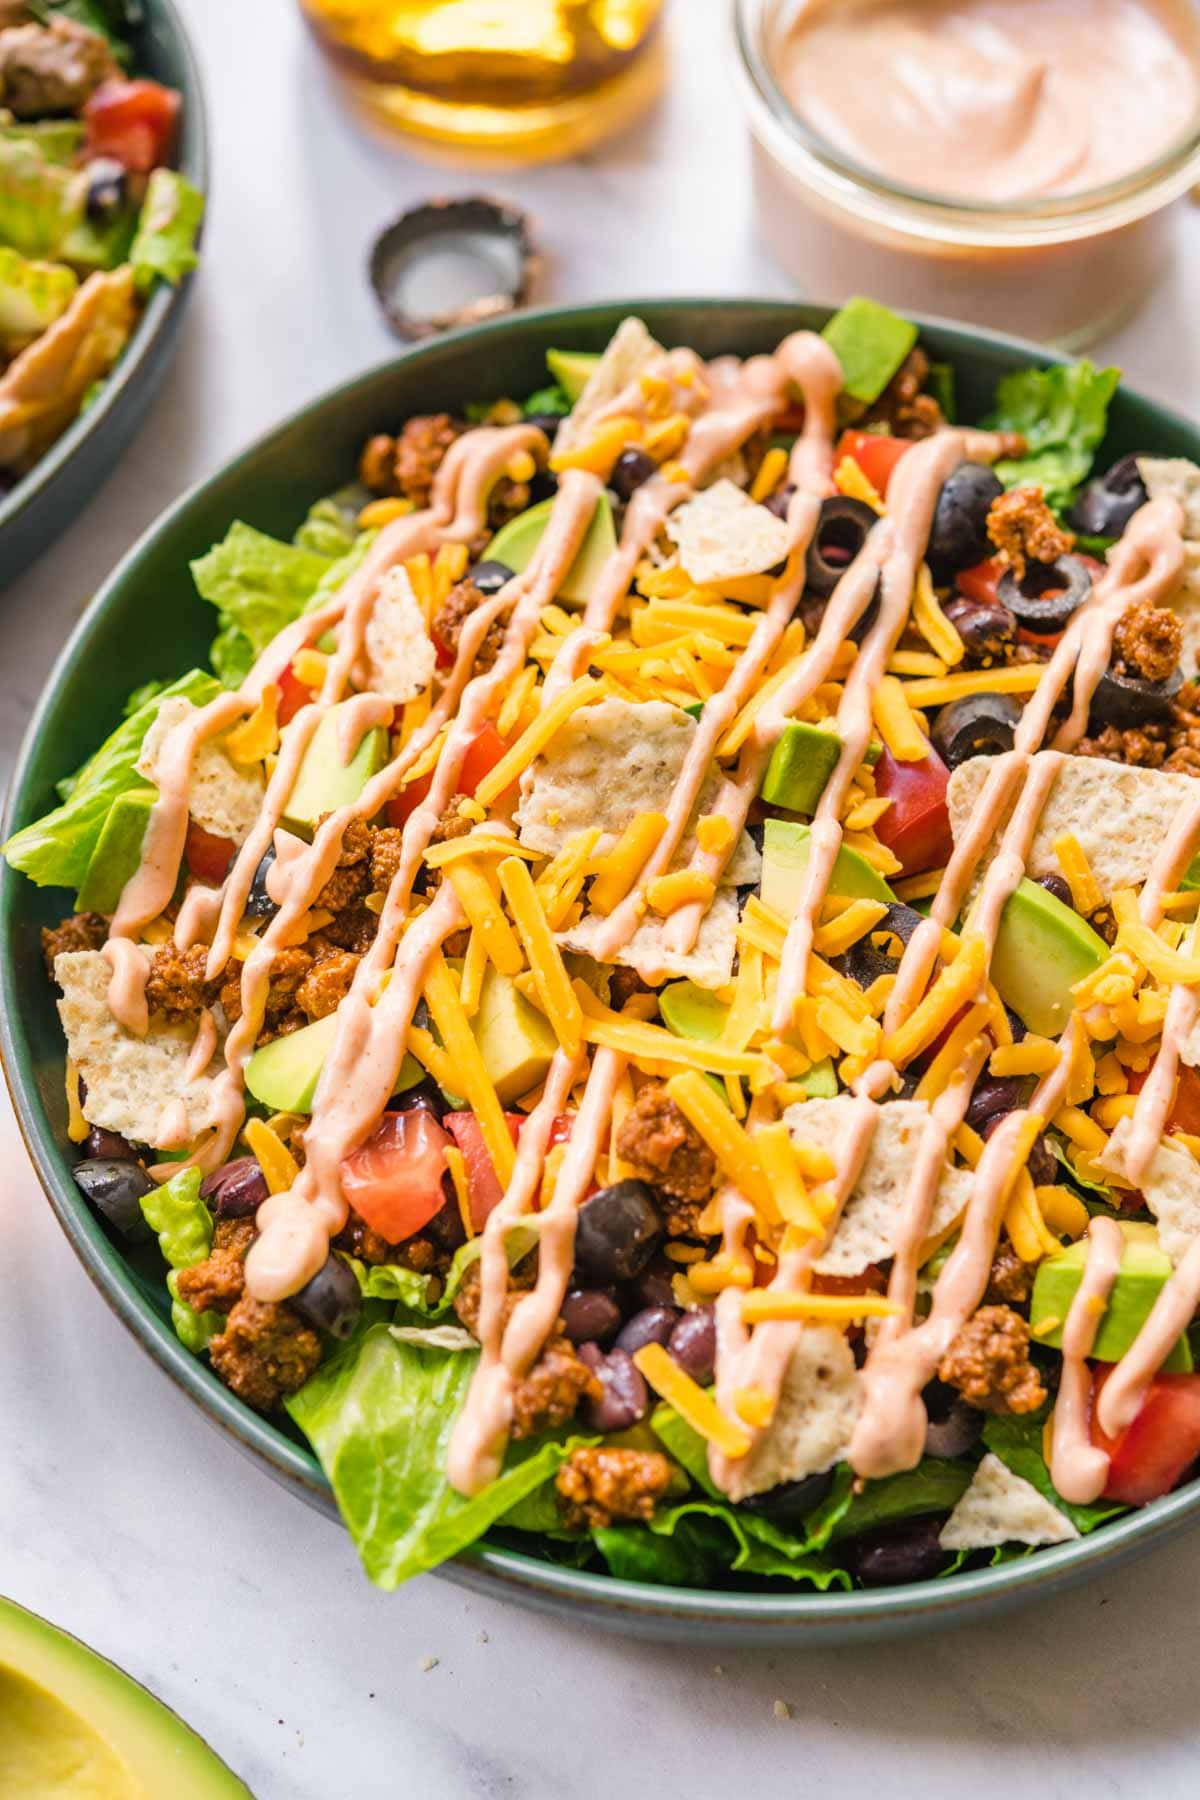 Assembled Taco Salad in bowl with lettuce, black beans, seasoned ground beef, shredded cheese, avocado, and dressing.